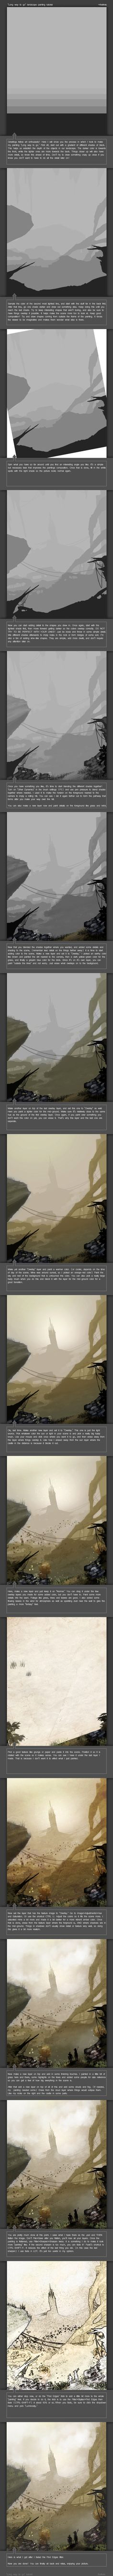 Environment Painting Tutorial by thefireis.deviantart.com on @deviantART